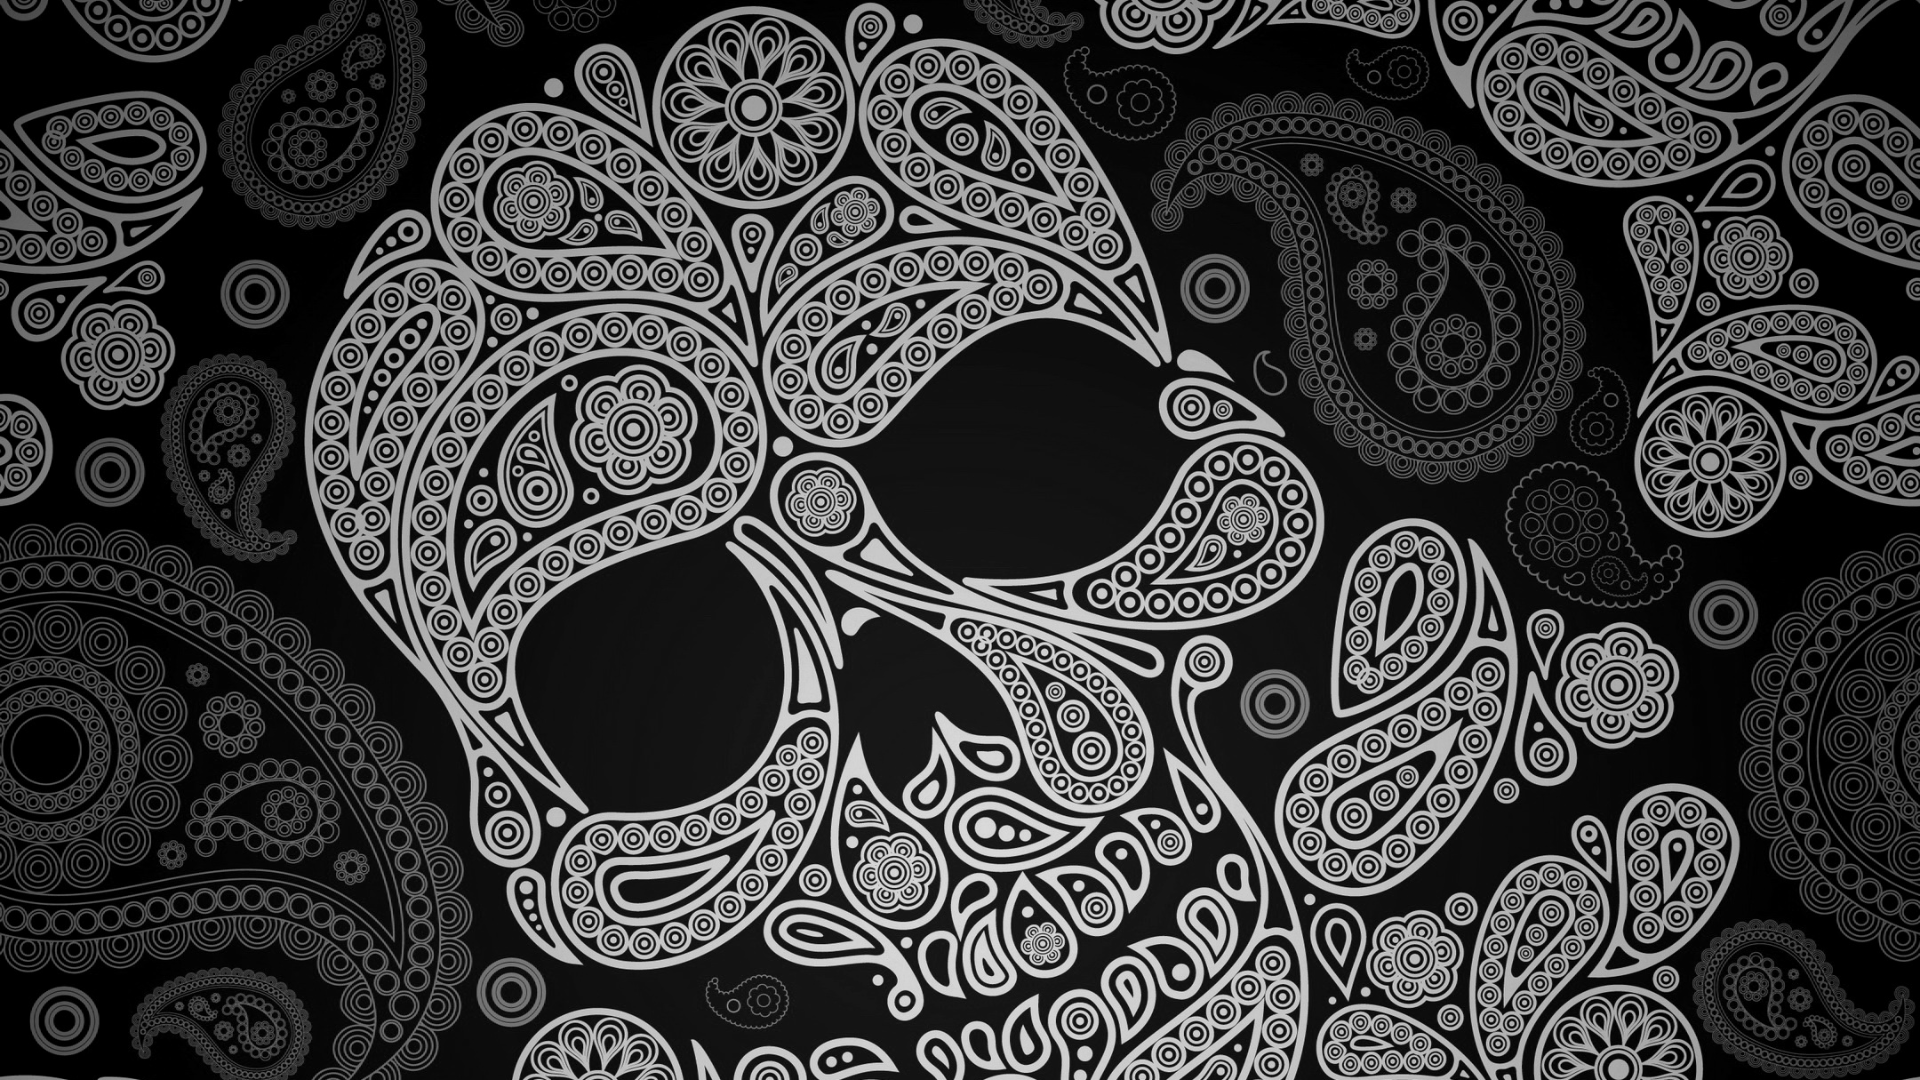 Sugar Skull Wallpaper Paisley skull 1920x1080